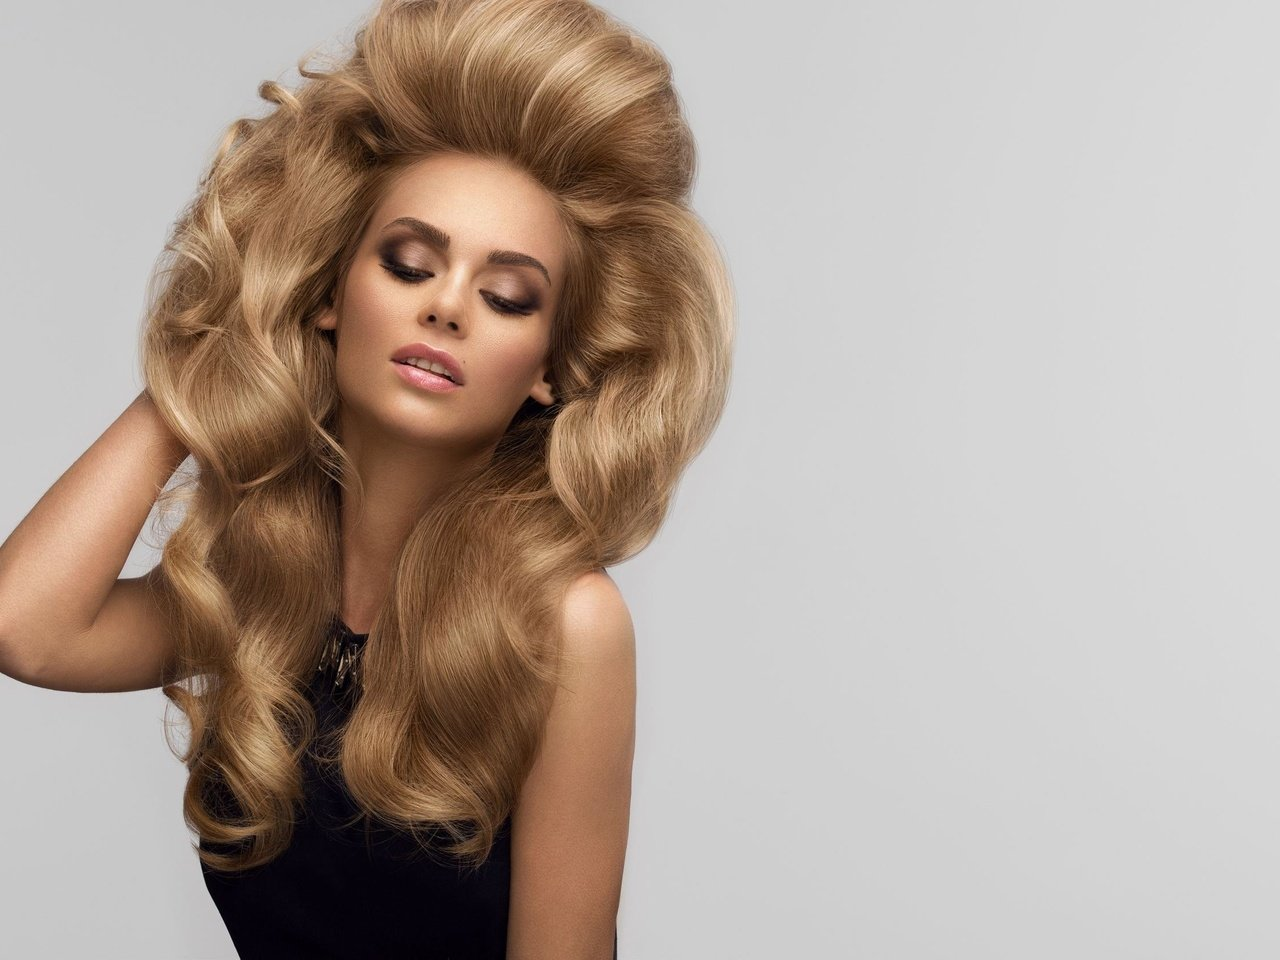 Fashions first five hair in thousand years Fashions in Hair: The First Five Thousand Years:.uk